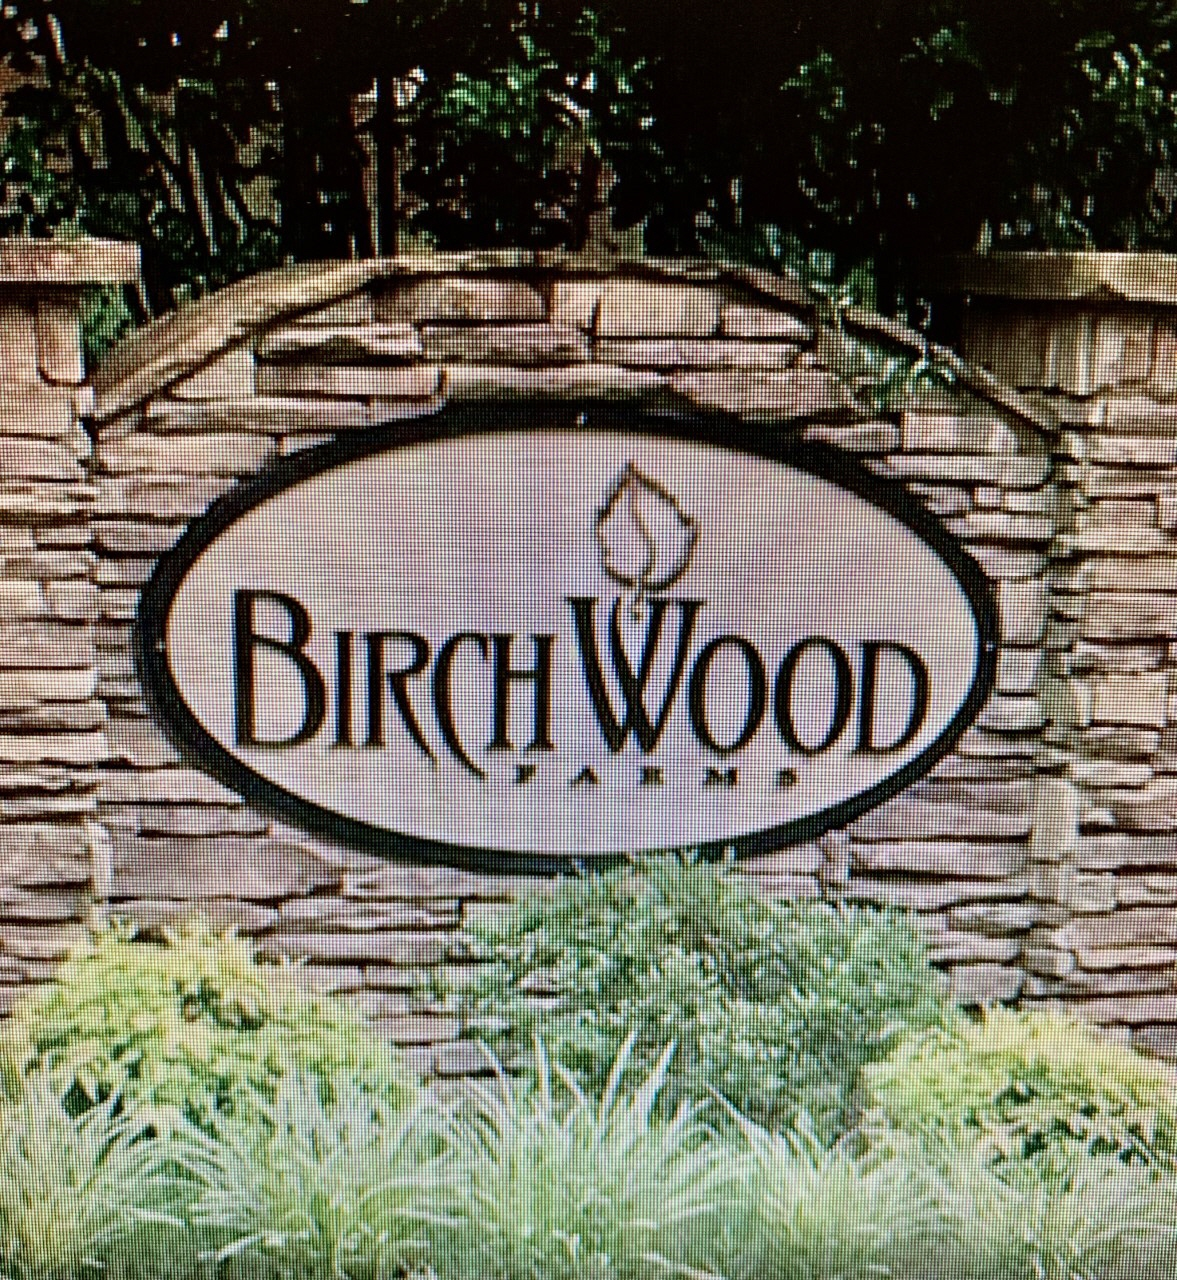 50 Birchwood Farms Ln, Dallas, GA, 30132 United States